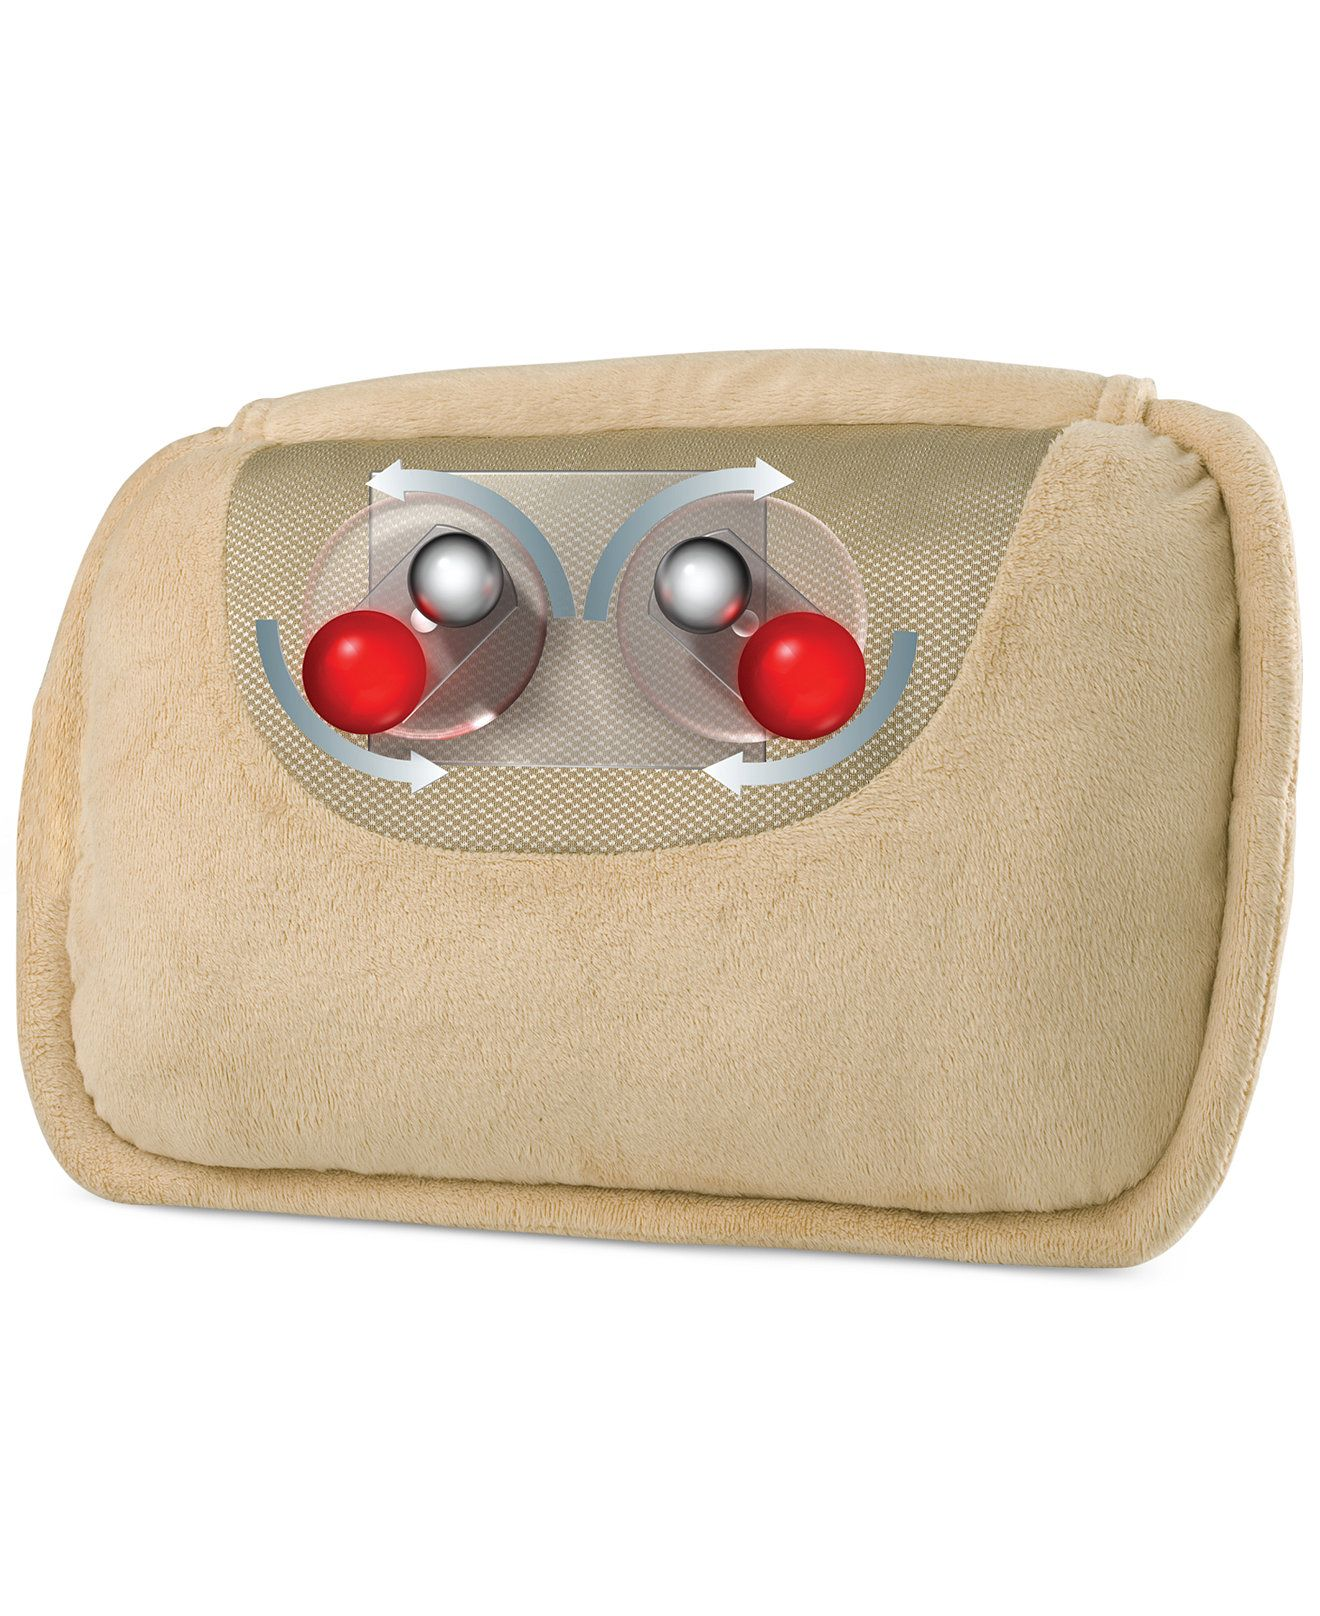 HoMedics Shiatsu Pillow Massager